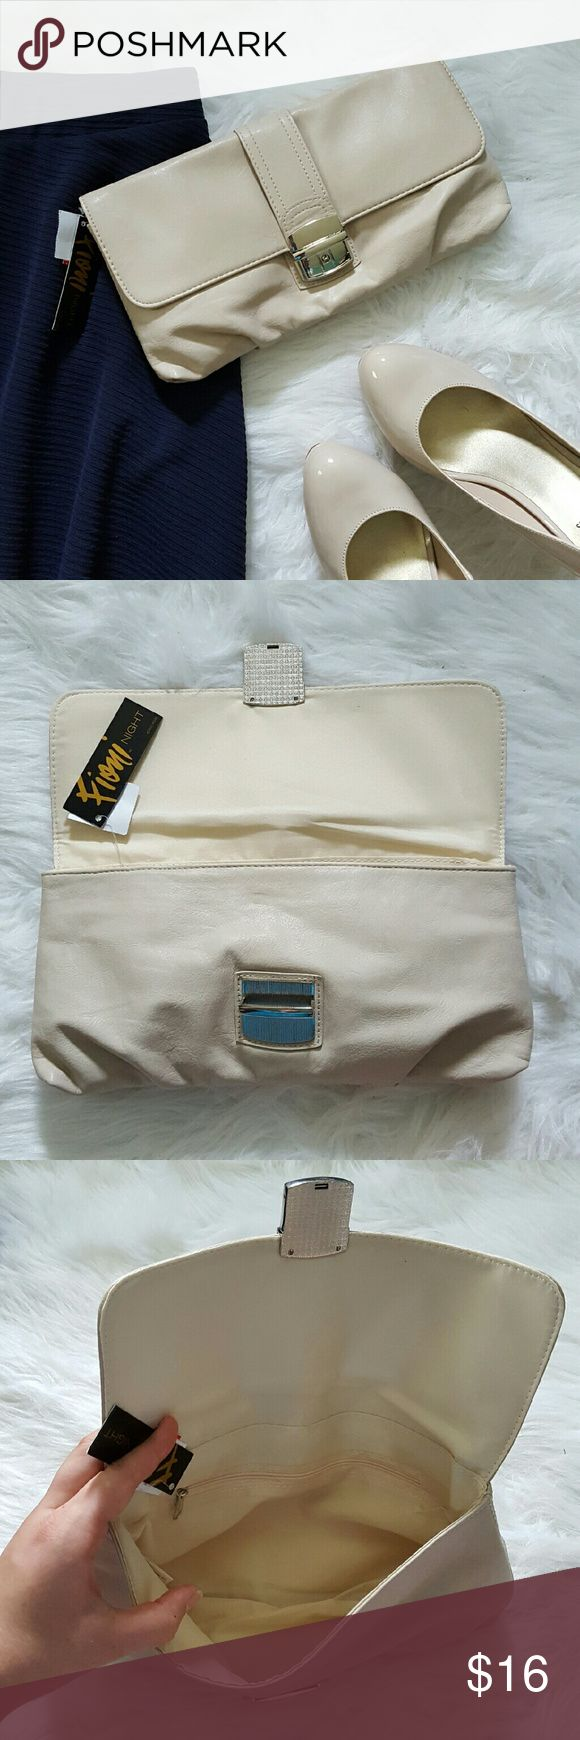 """Stone Sabrina Push Lock Clutch Fioni brand. Stone (cream, beige, tan) color. 'Sabrina' style bag.  Faux leather exterior. Silver tone hardware - push lock front closure. Satin Polyester lined interior. Inside zip pocket. 12"""" x 6"""" x 1"""" closed dimensions. New with tags. FIONI Clothing Bags Clutches & Wristlets"""